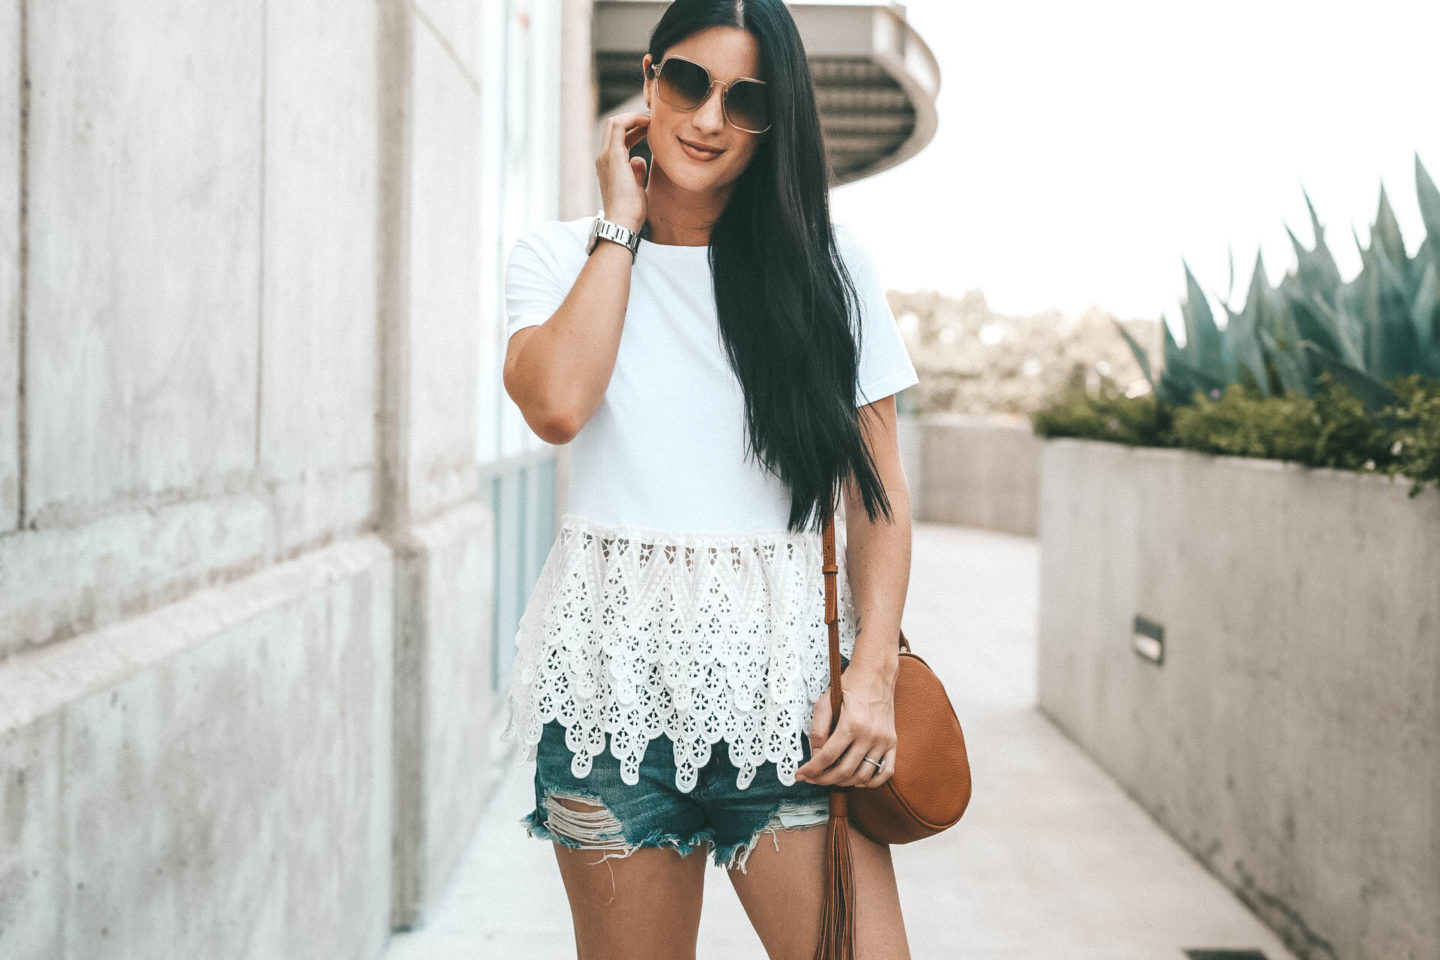 DTKAustin shares the perfect white lace peplum top for summer from Chicwish. It is under $30 and an affordable staple top. | how to wear a peplum top | summer tops | summer outfits for women | women's outfits || Dressed to Kill #style #fashion #outfits #womensoutfit #peplum #peplumtop #summerfashion #summerstyle #summeroutfit #dtkaustin